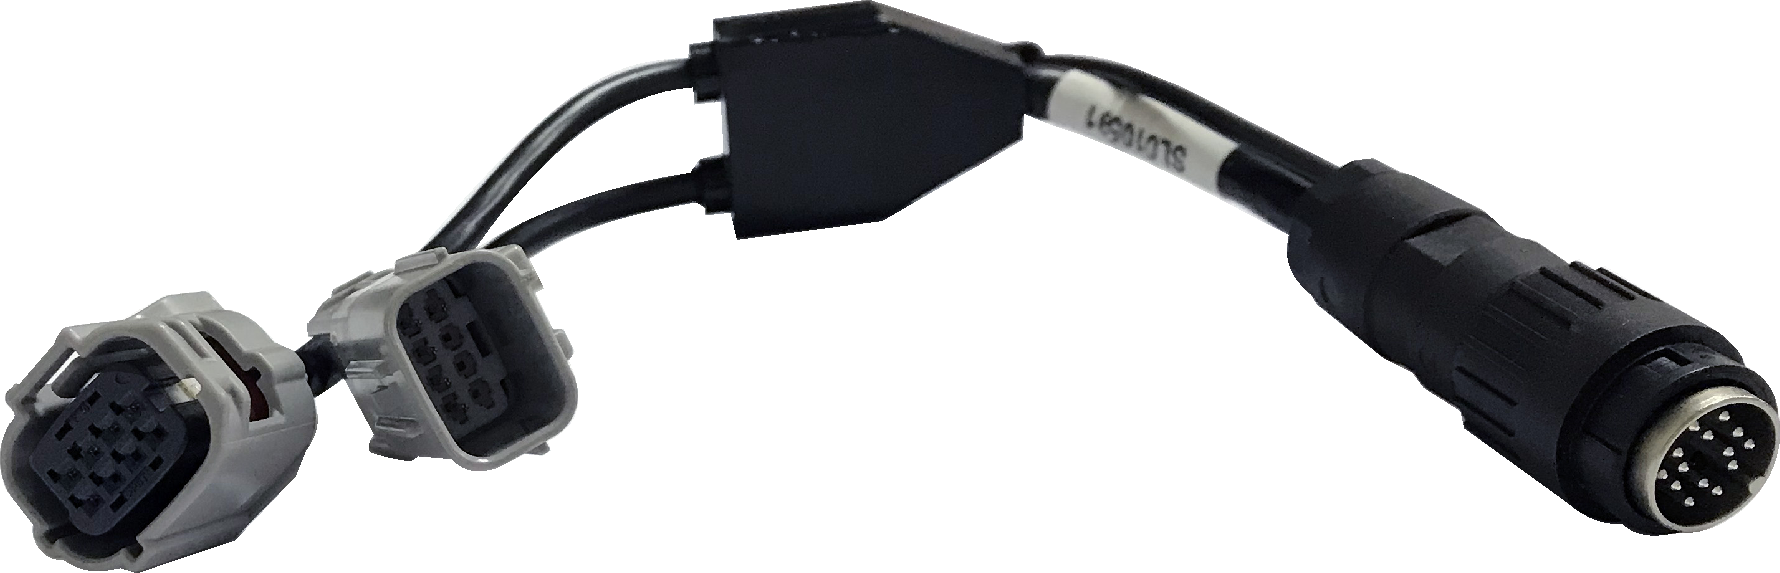 MS591 Aprilia / Moto-Guzzi V7 Scanner Cable - ANSED Diagnostic Solutions LLC